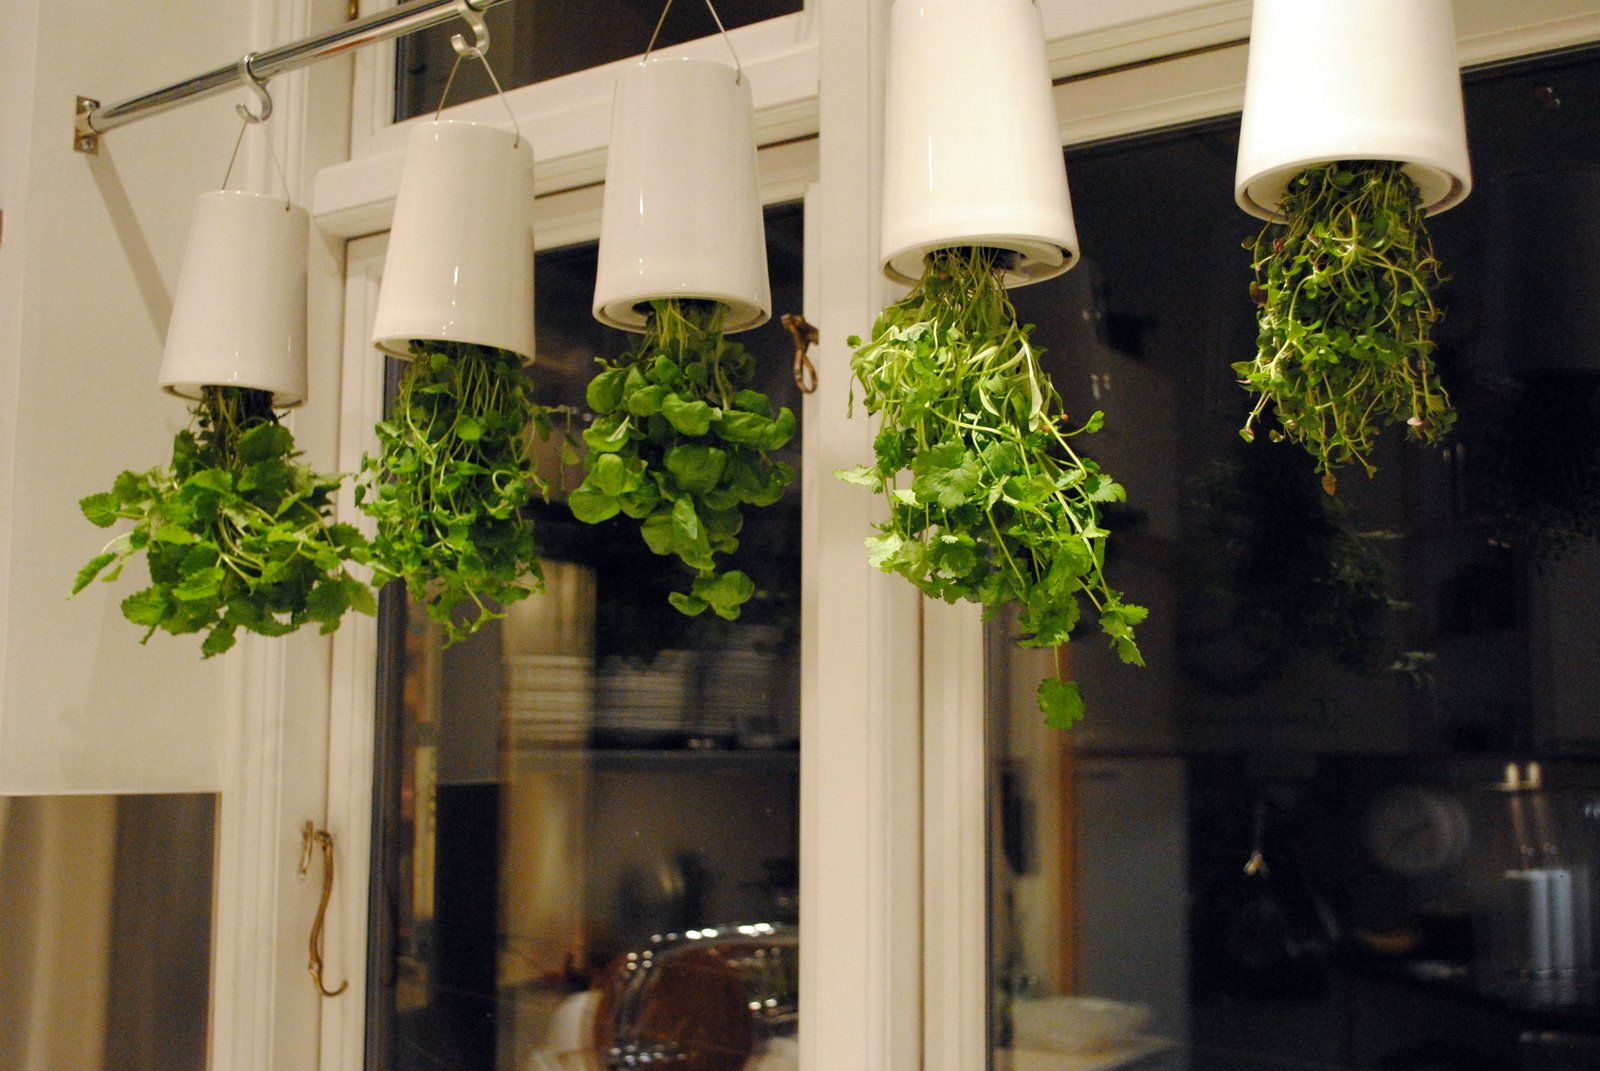 Sandras kitchen: Herb garden